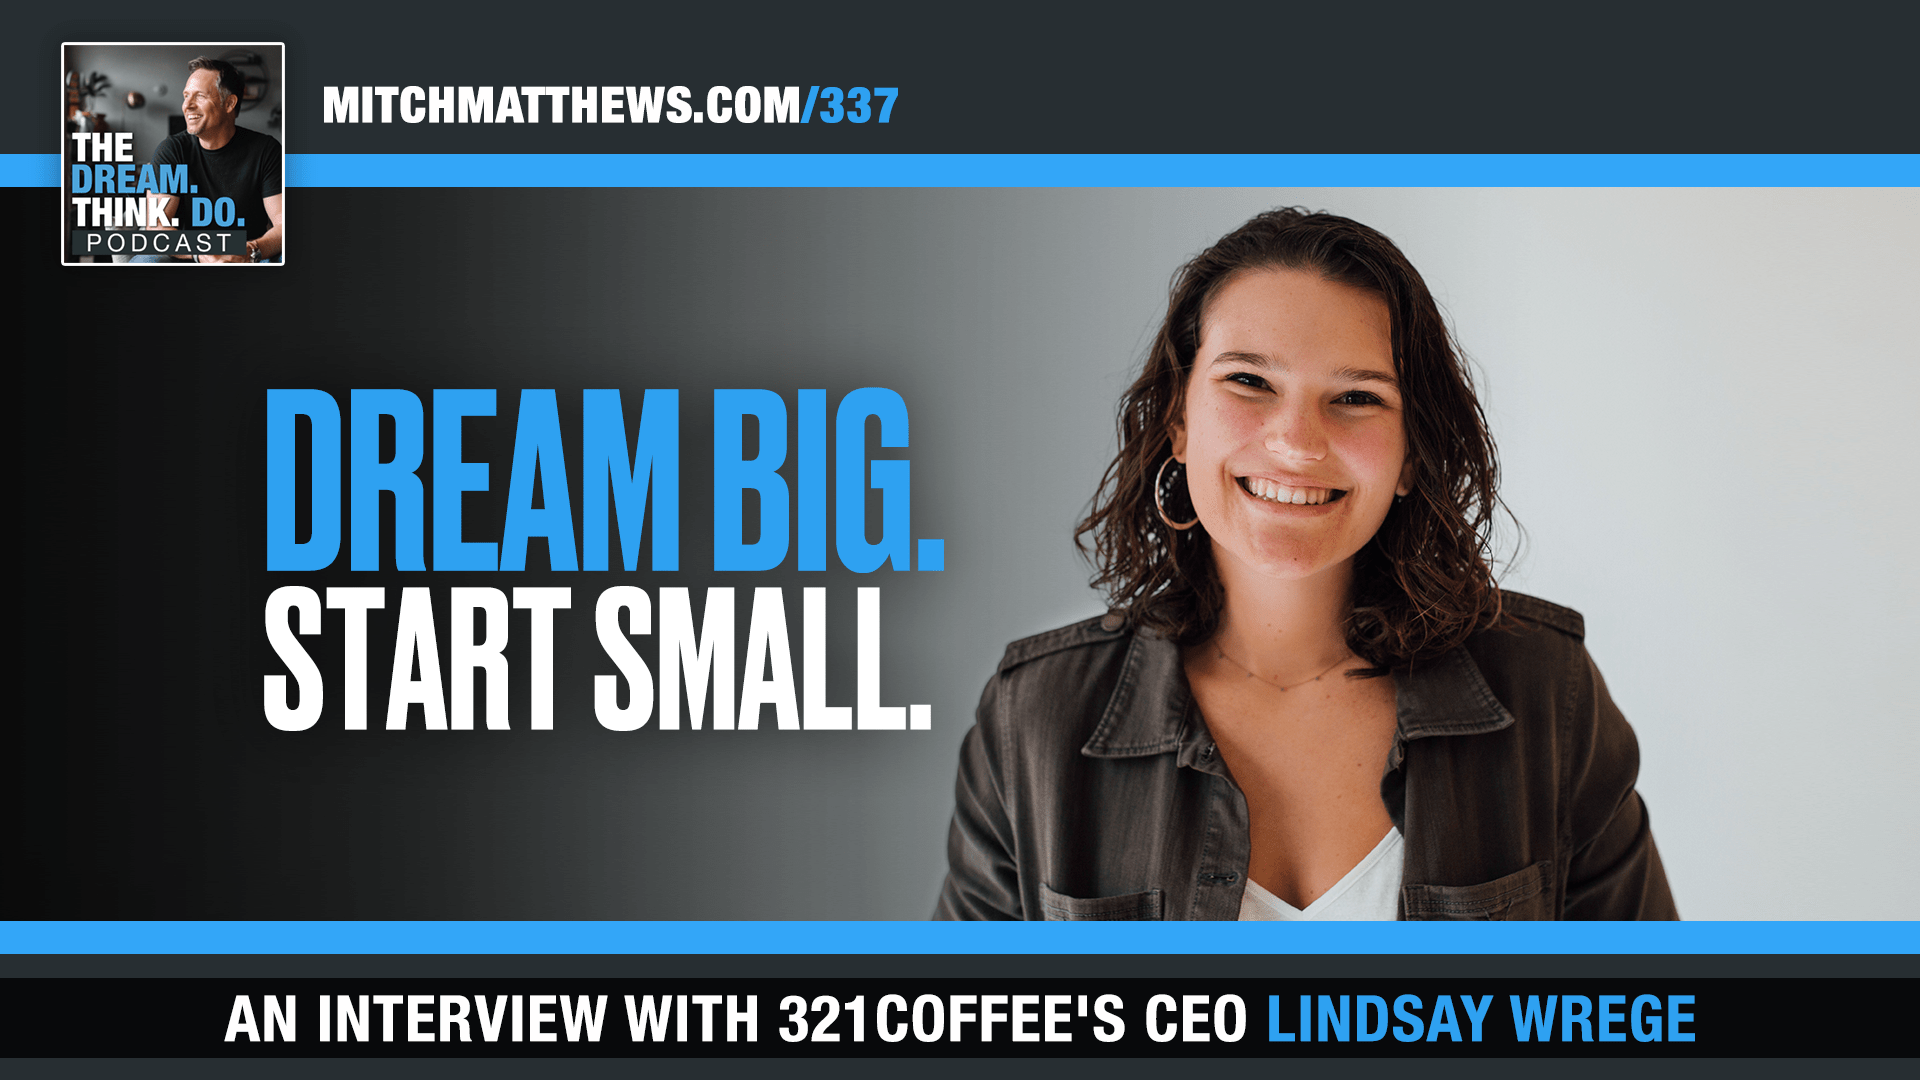 lindsay wrege- Intreview with Mitch Matthews